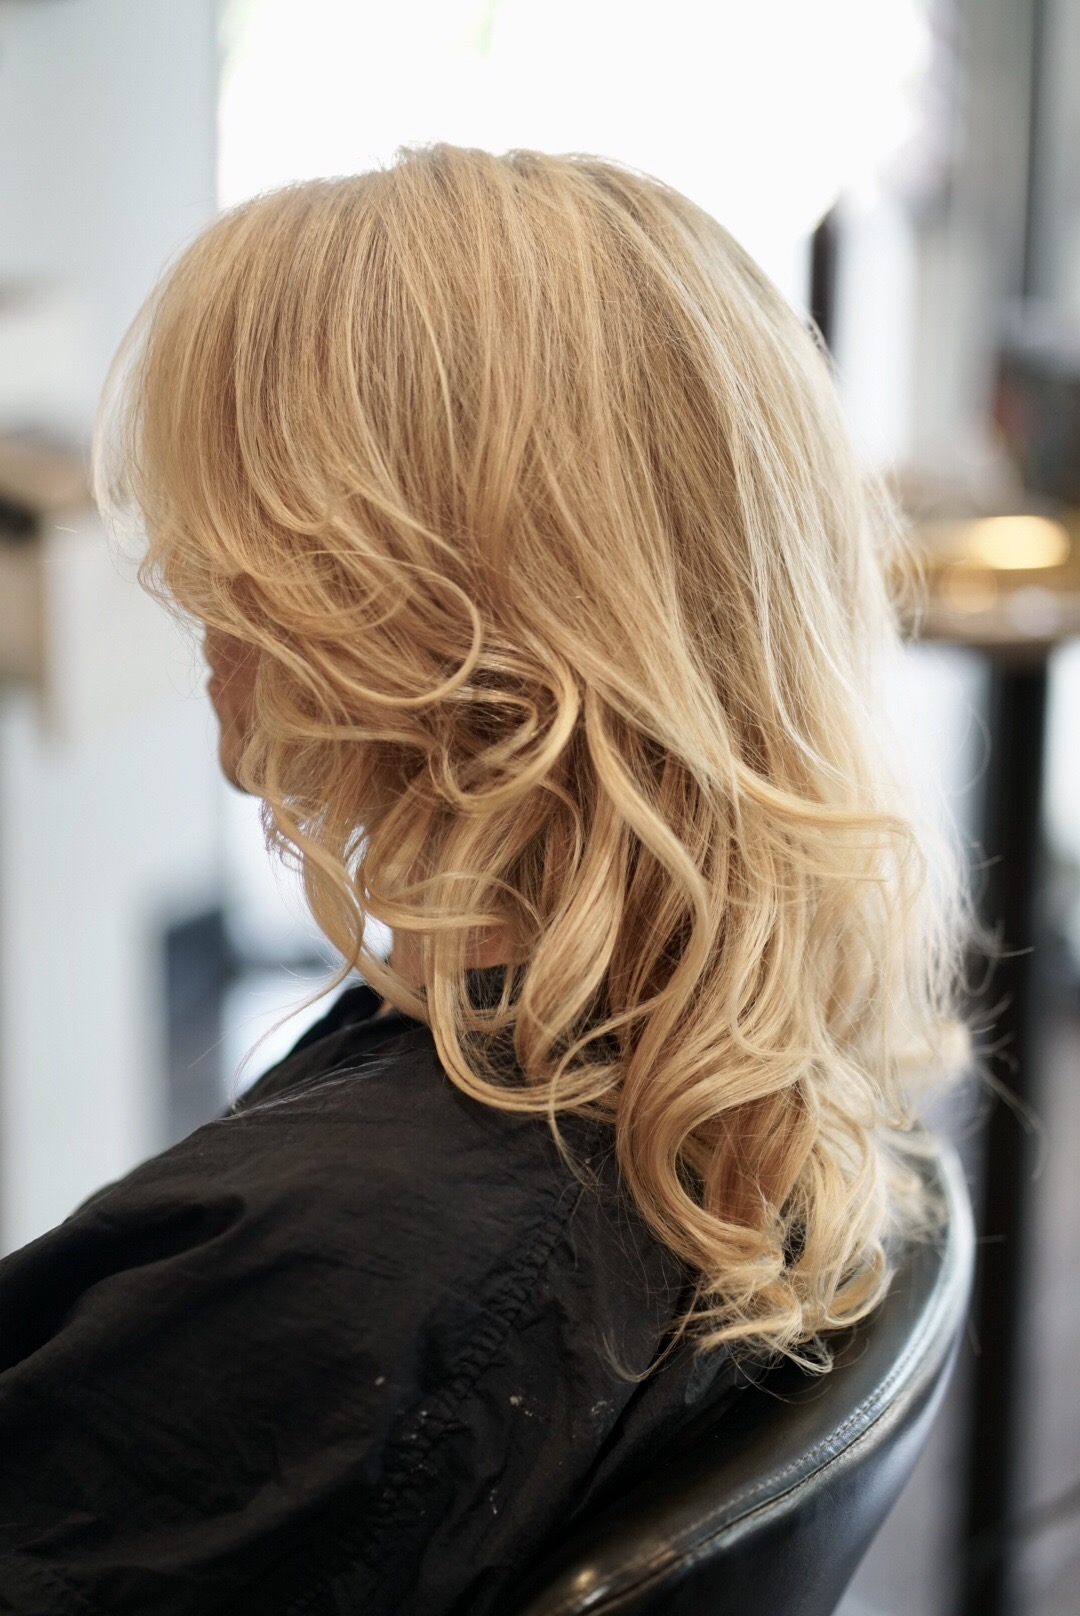 Cut & Color by Mike